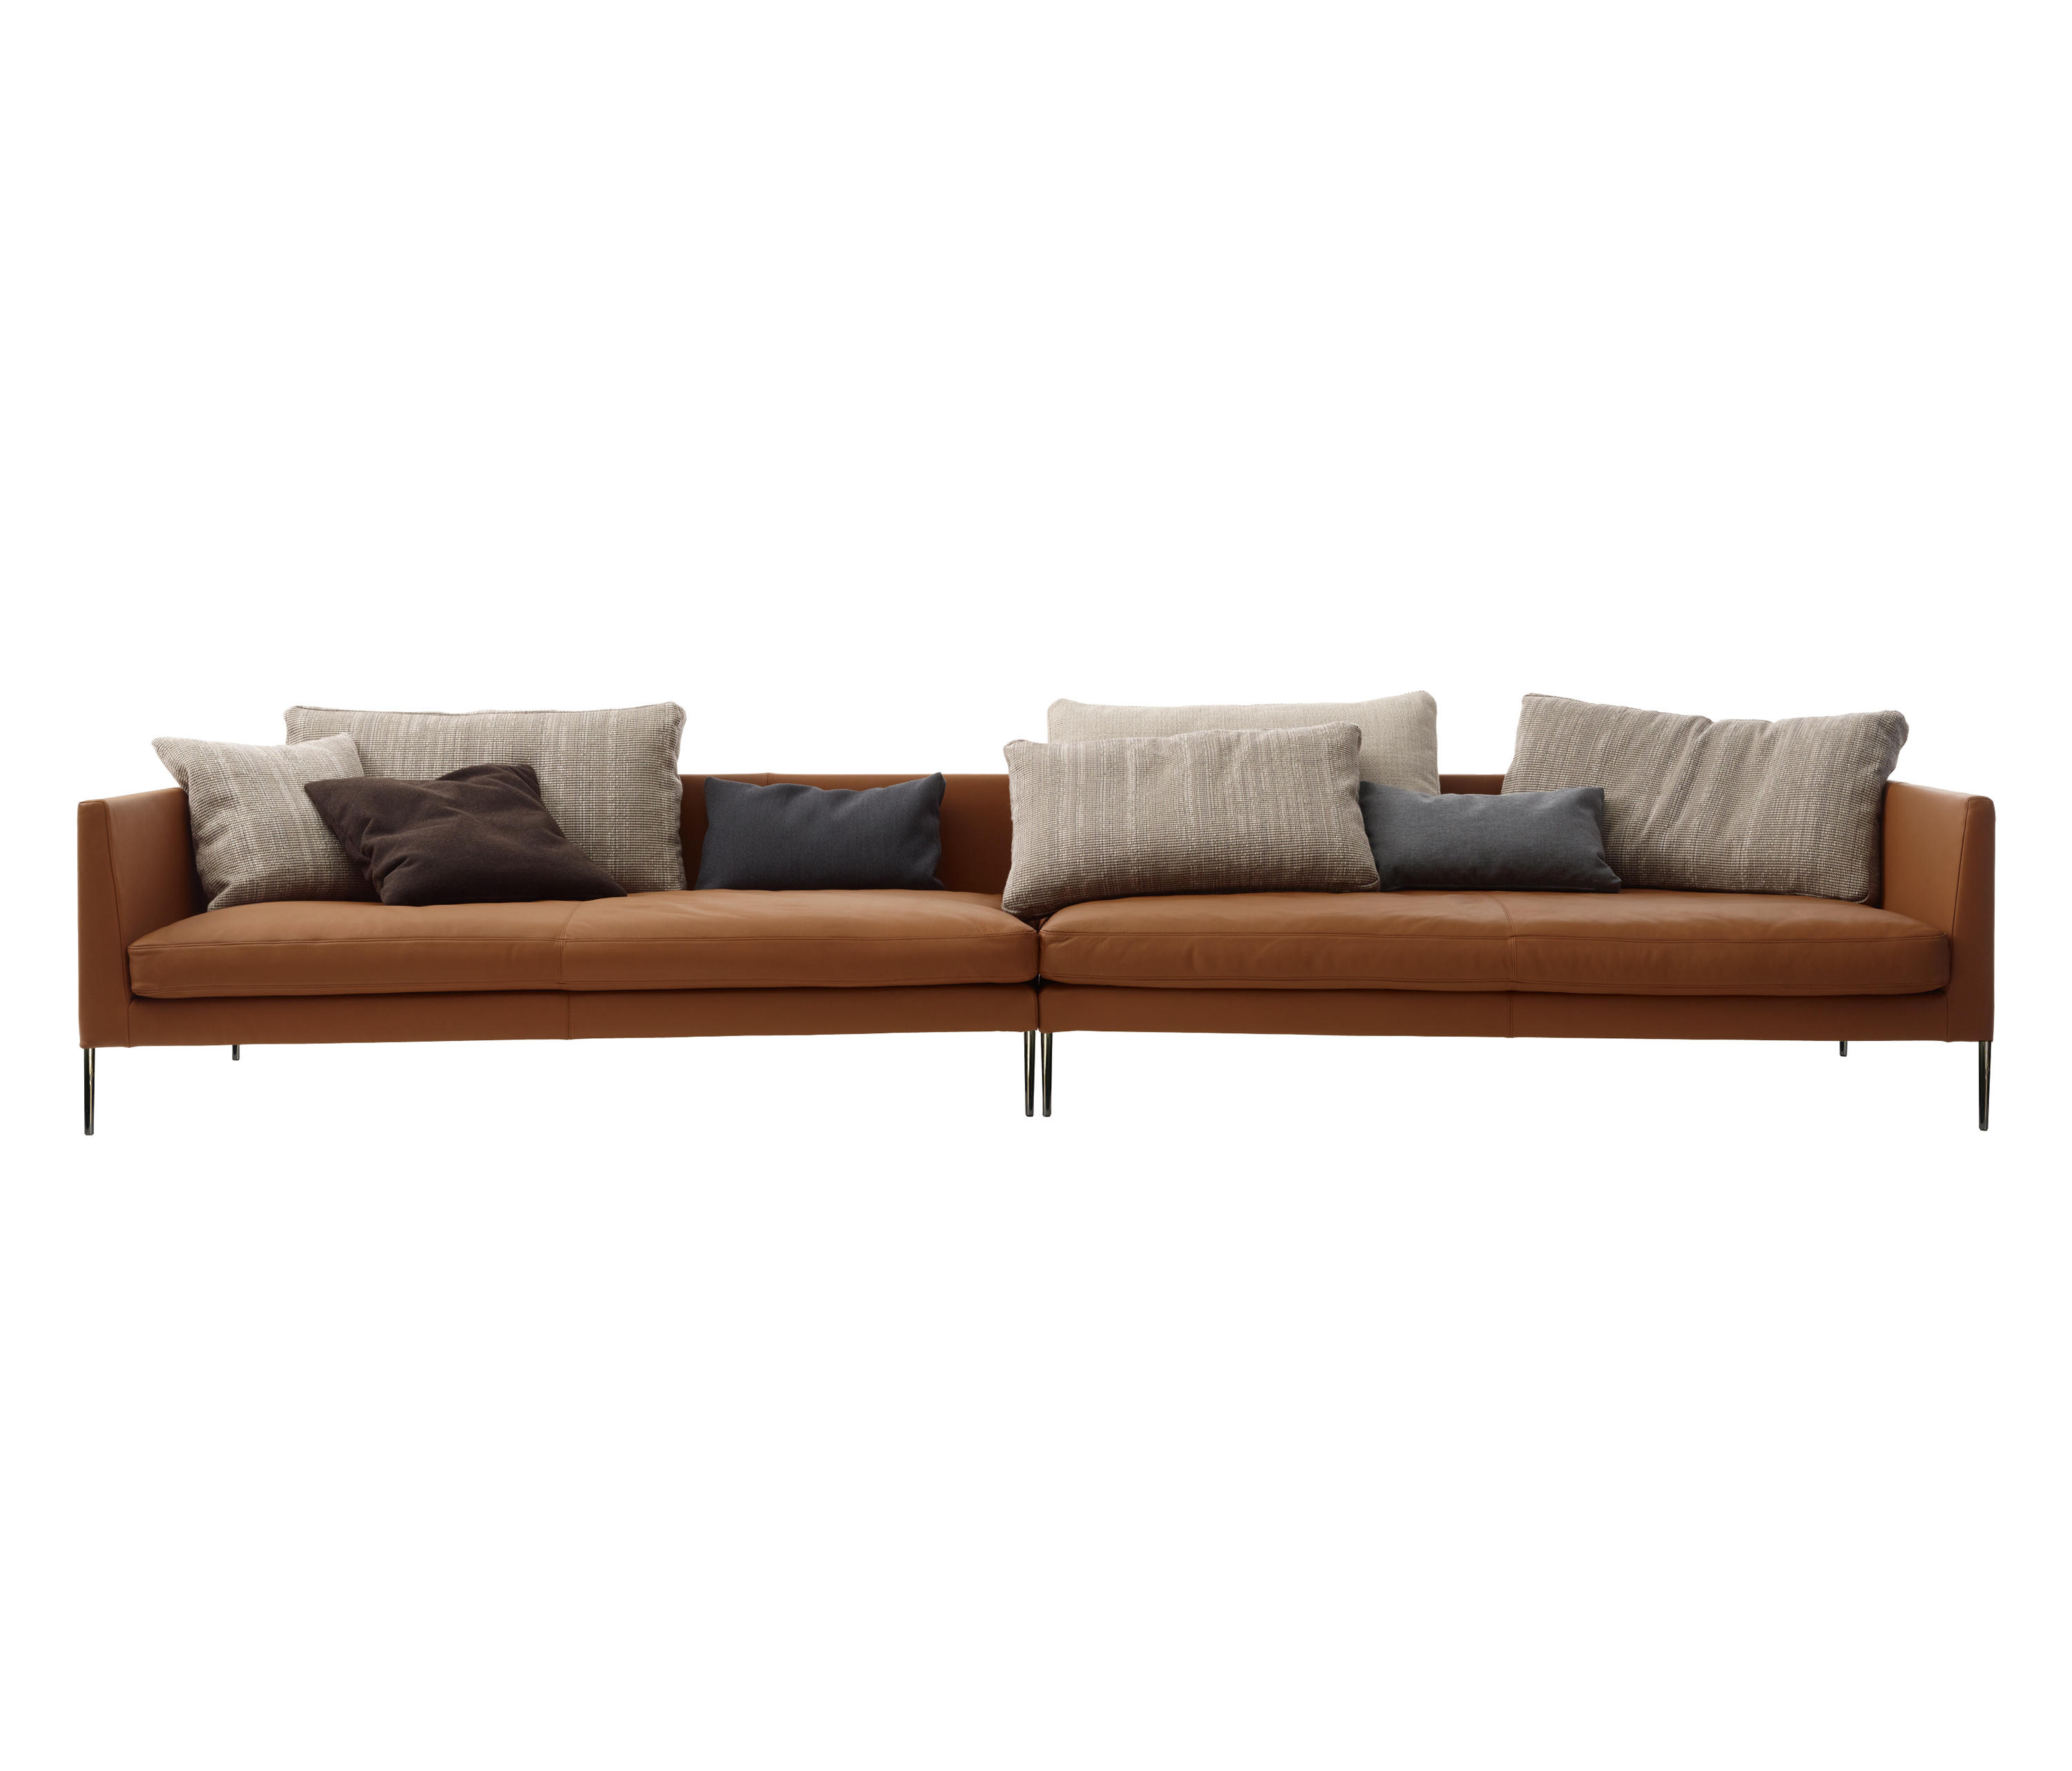 Lounge sofa leder  PILOTIS SOFA - Lounge sofas from COR | Architonic